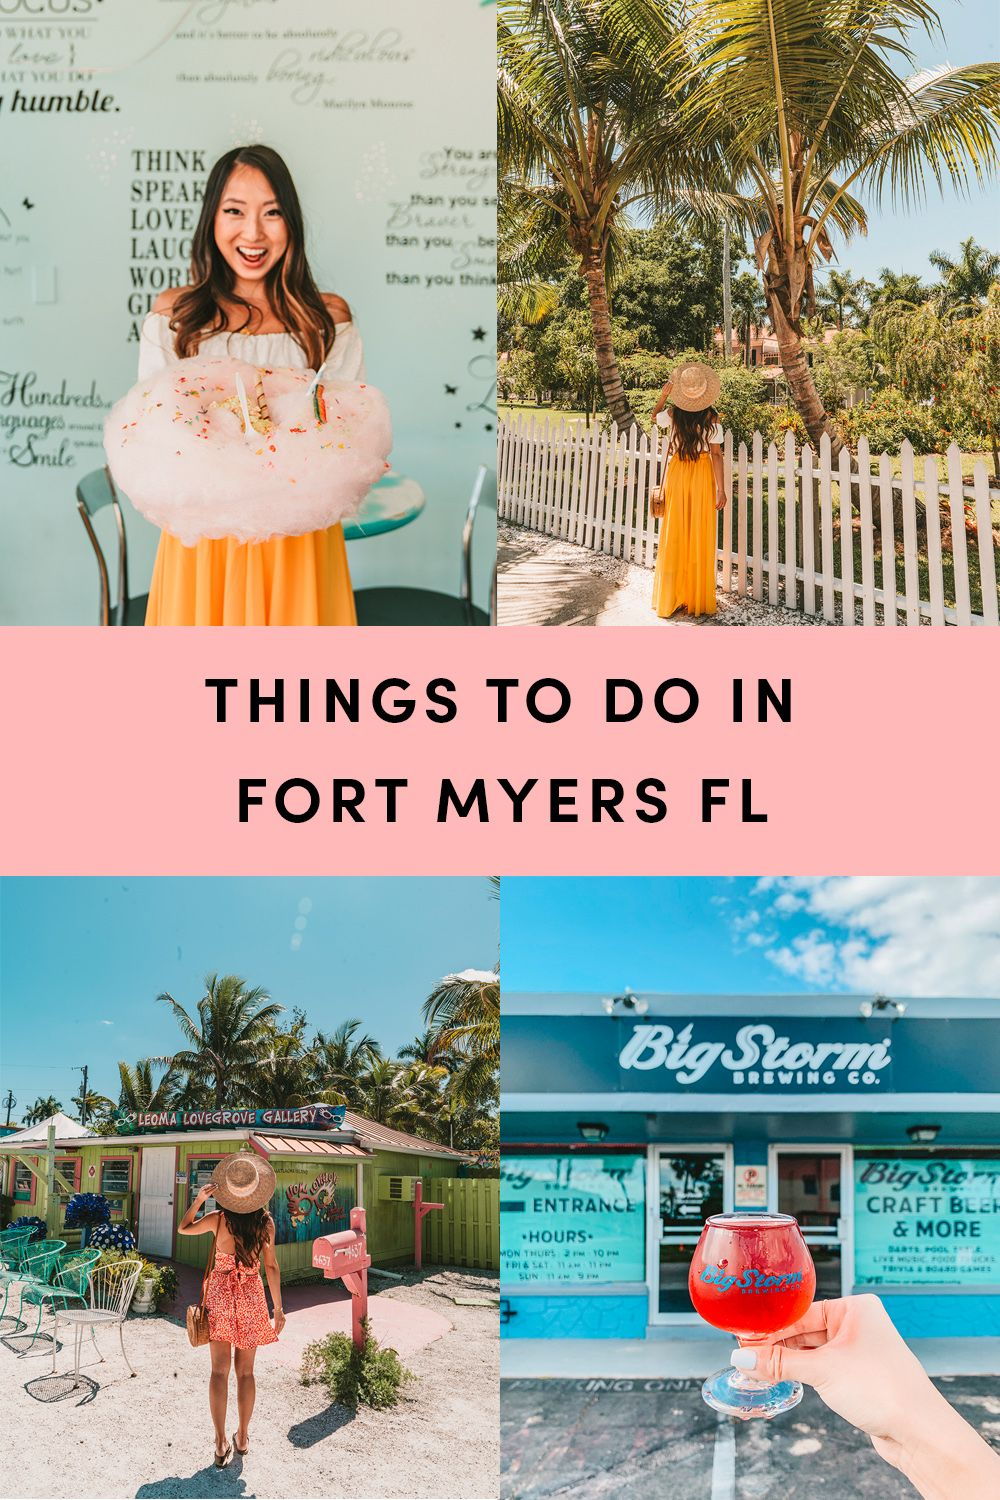 Ultimate Guide To Things To Do In Fort Myers With Images Fort